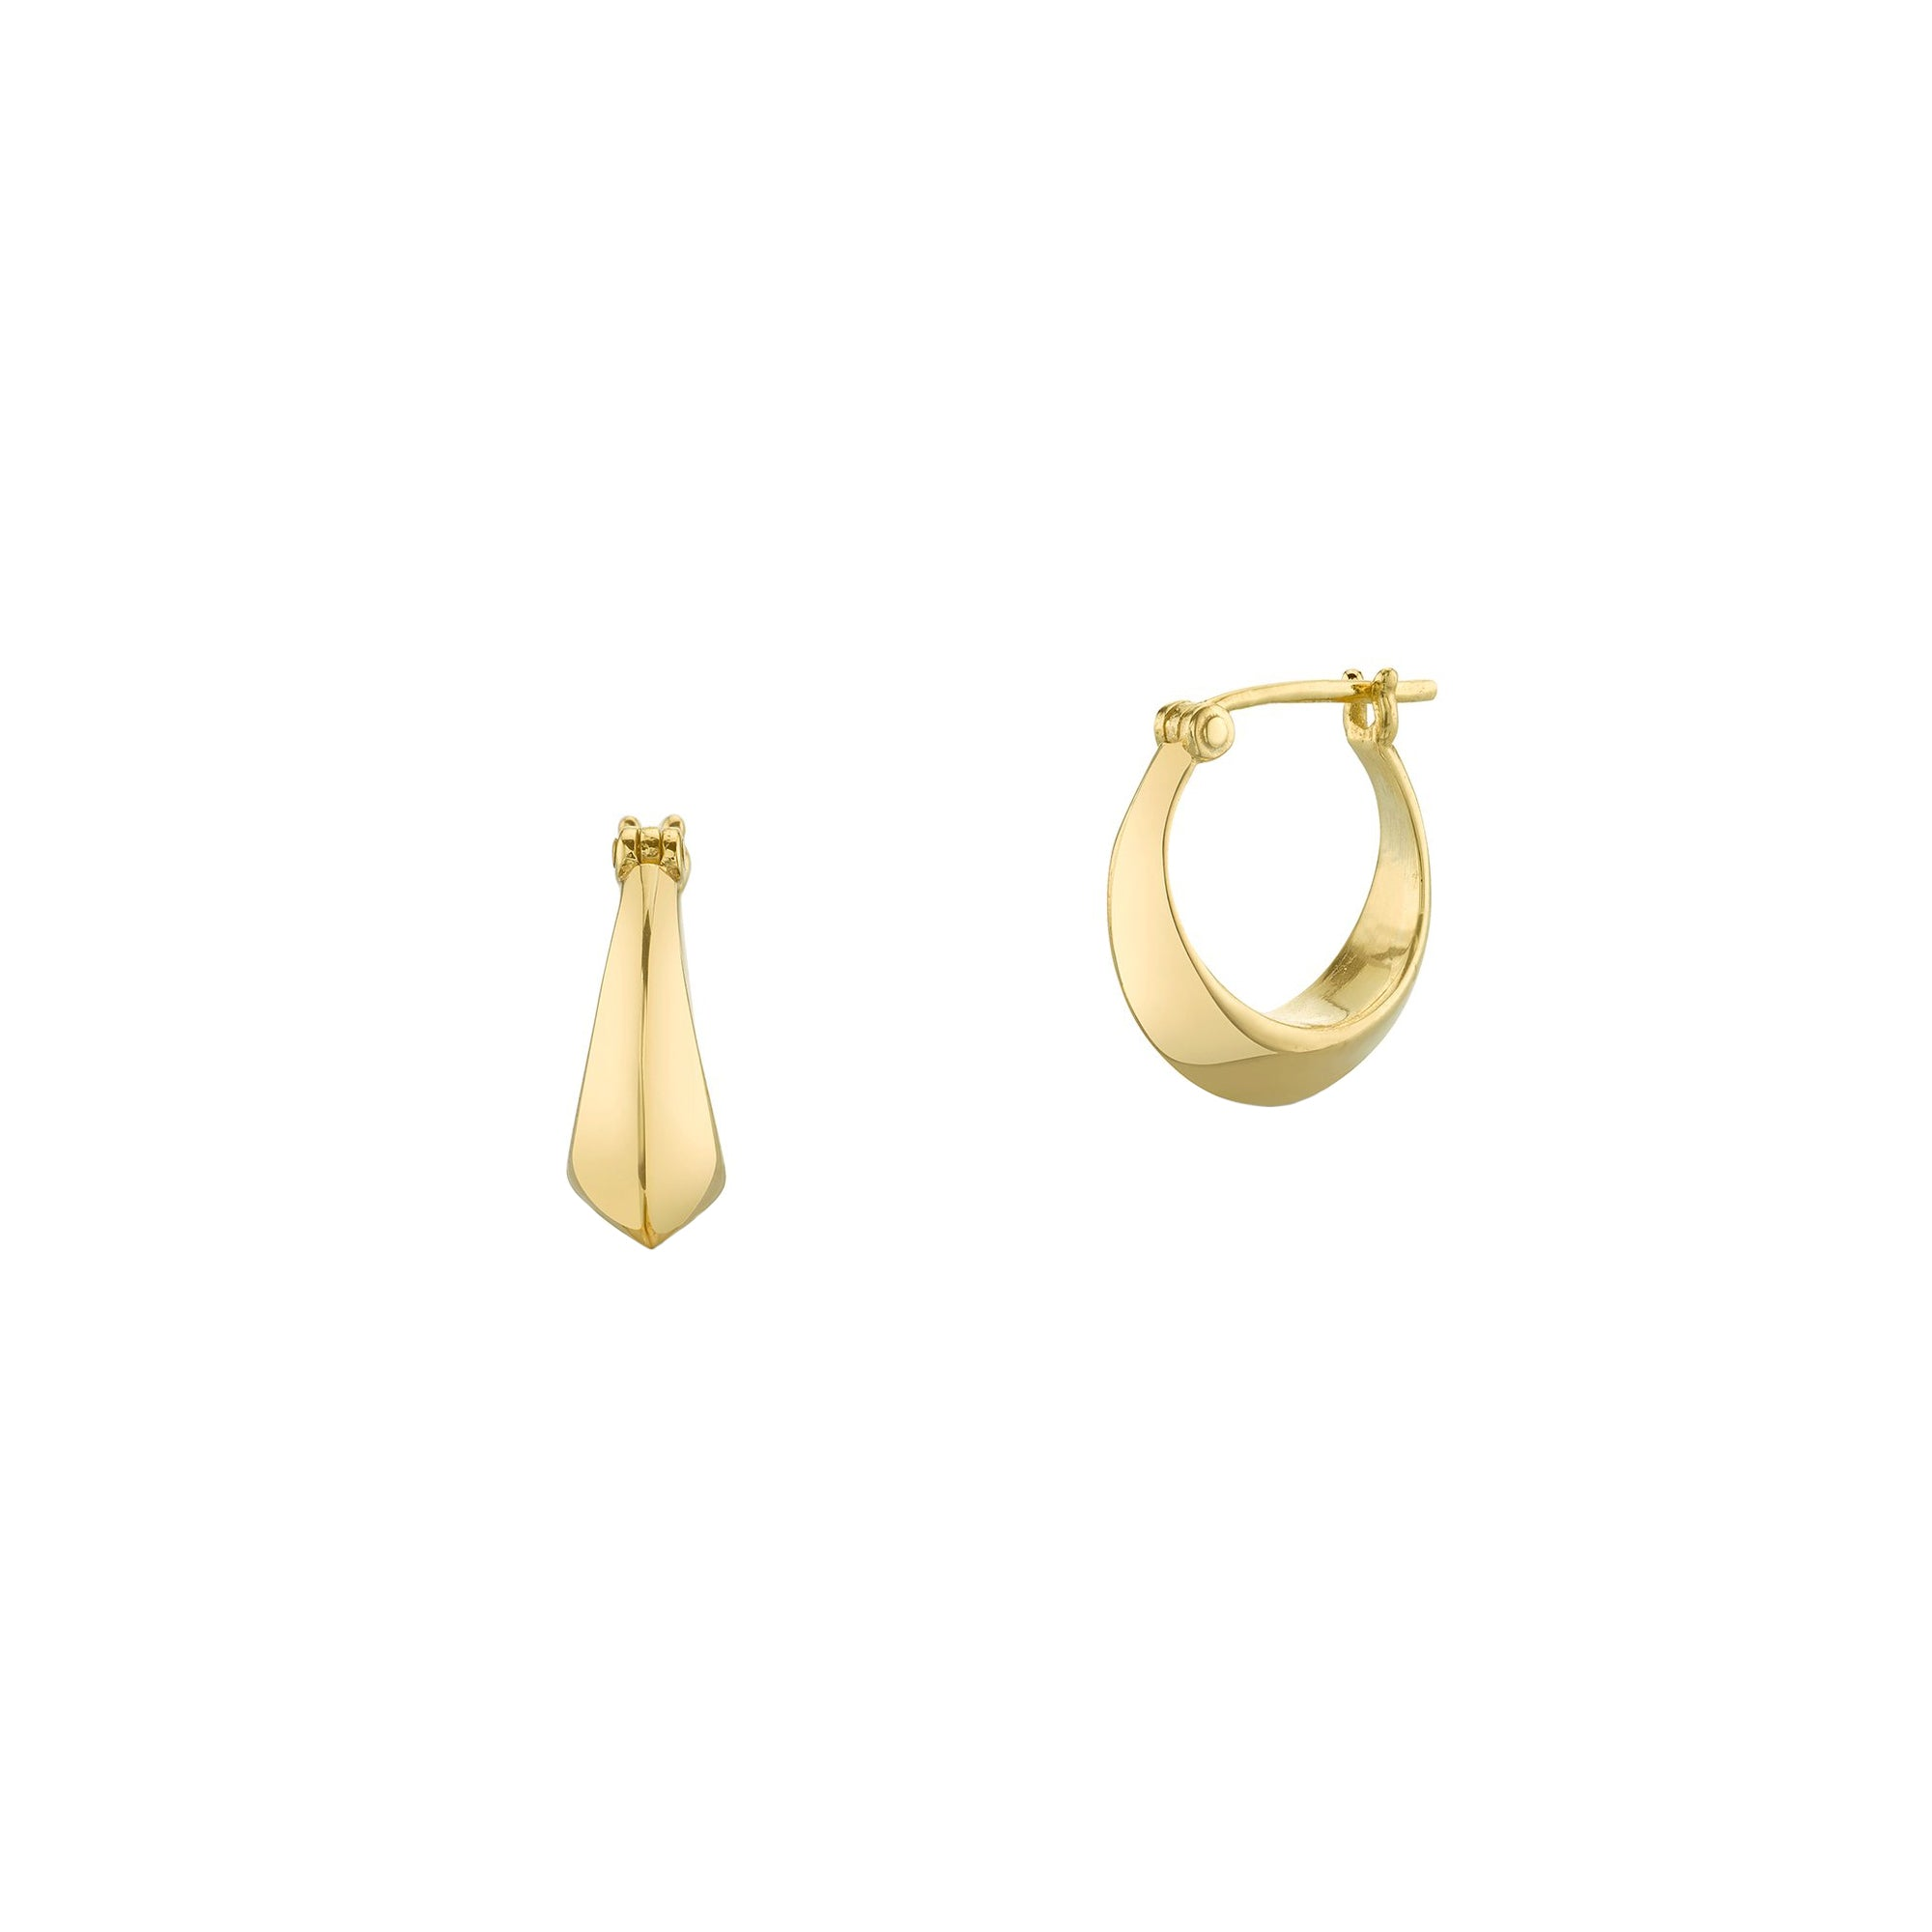 Lizzie Mandler Crescent Huggies - Gold - Earrings - Broken English Jewelry